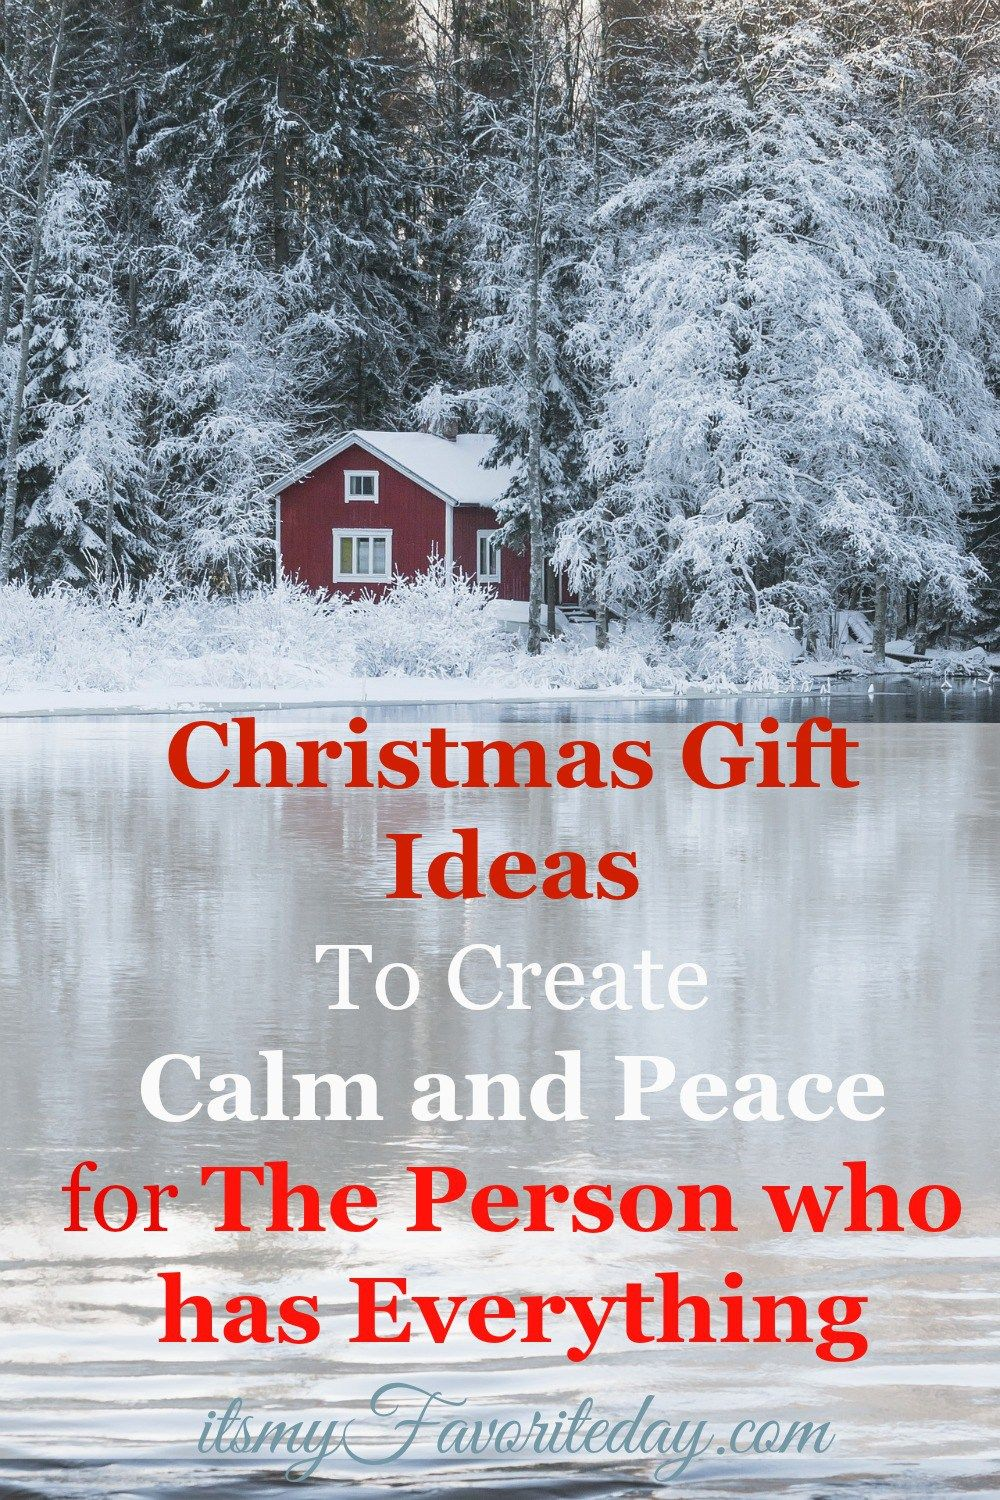 Christmas Gift Ideas for The Person who has Everything | Christmas gifts, Unique christmas gifts ...